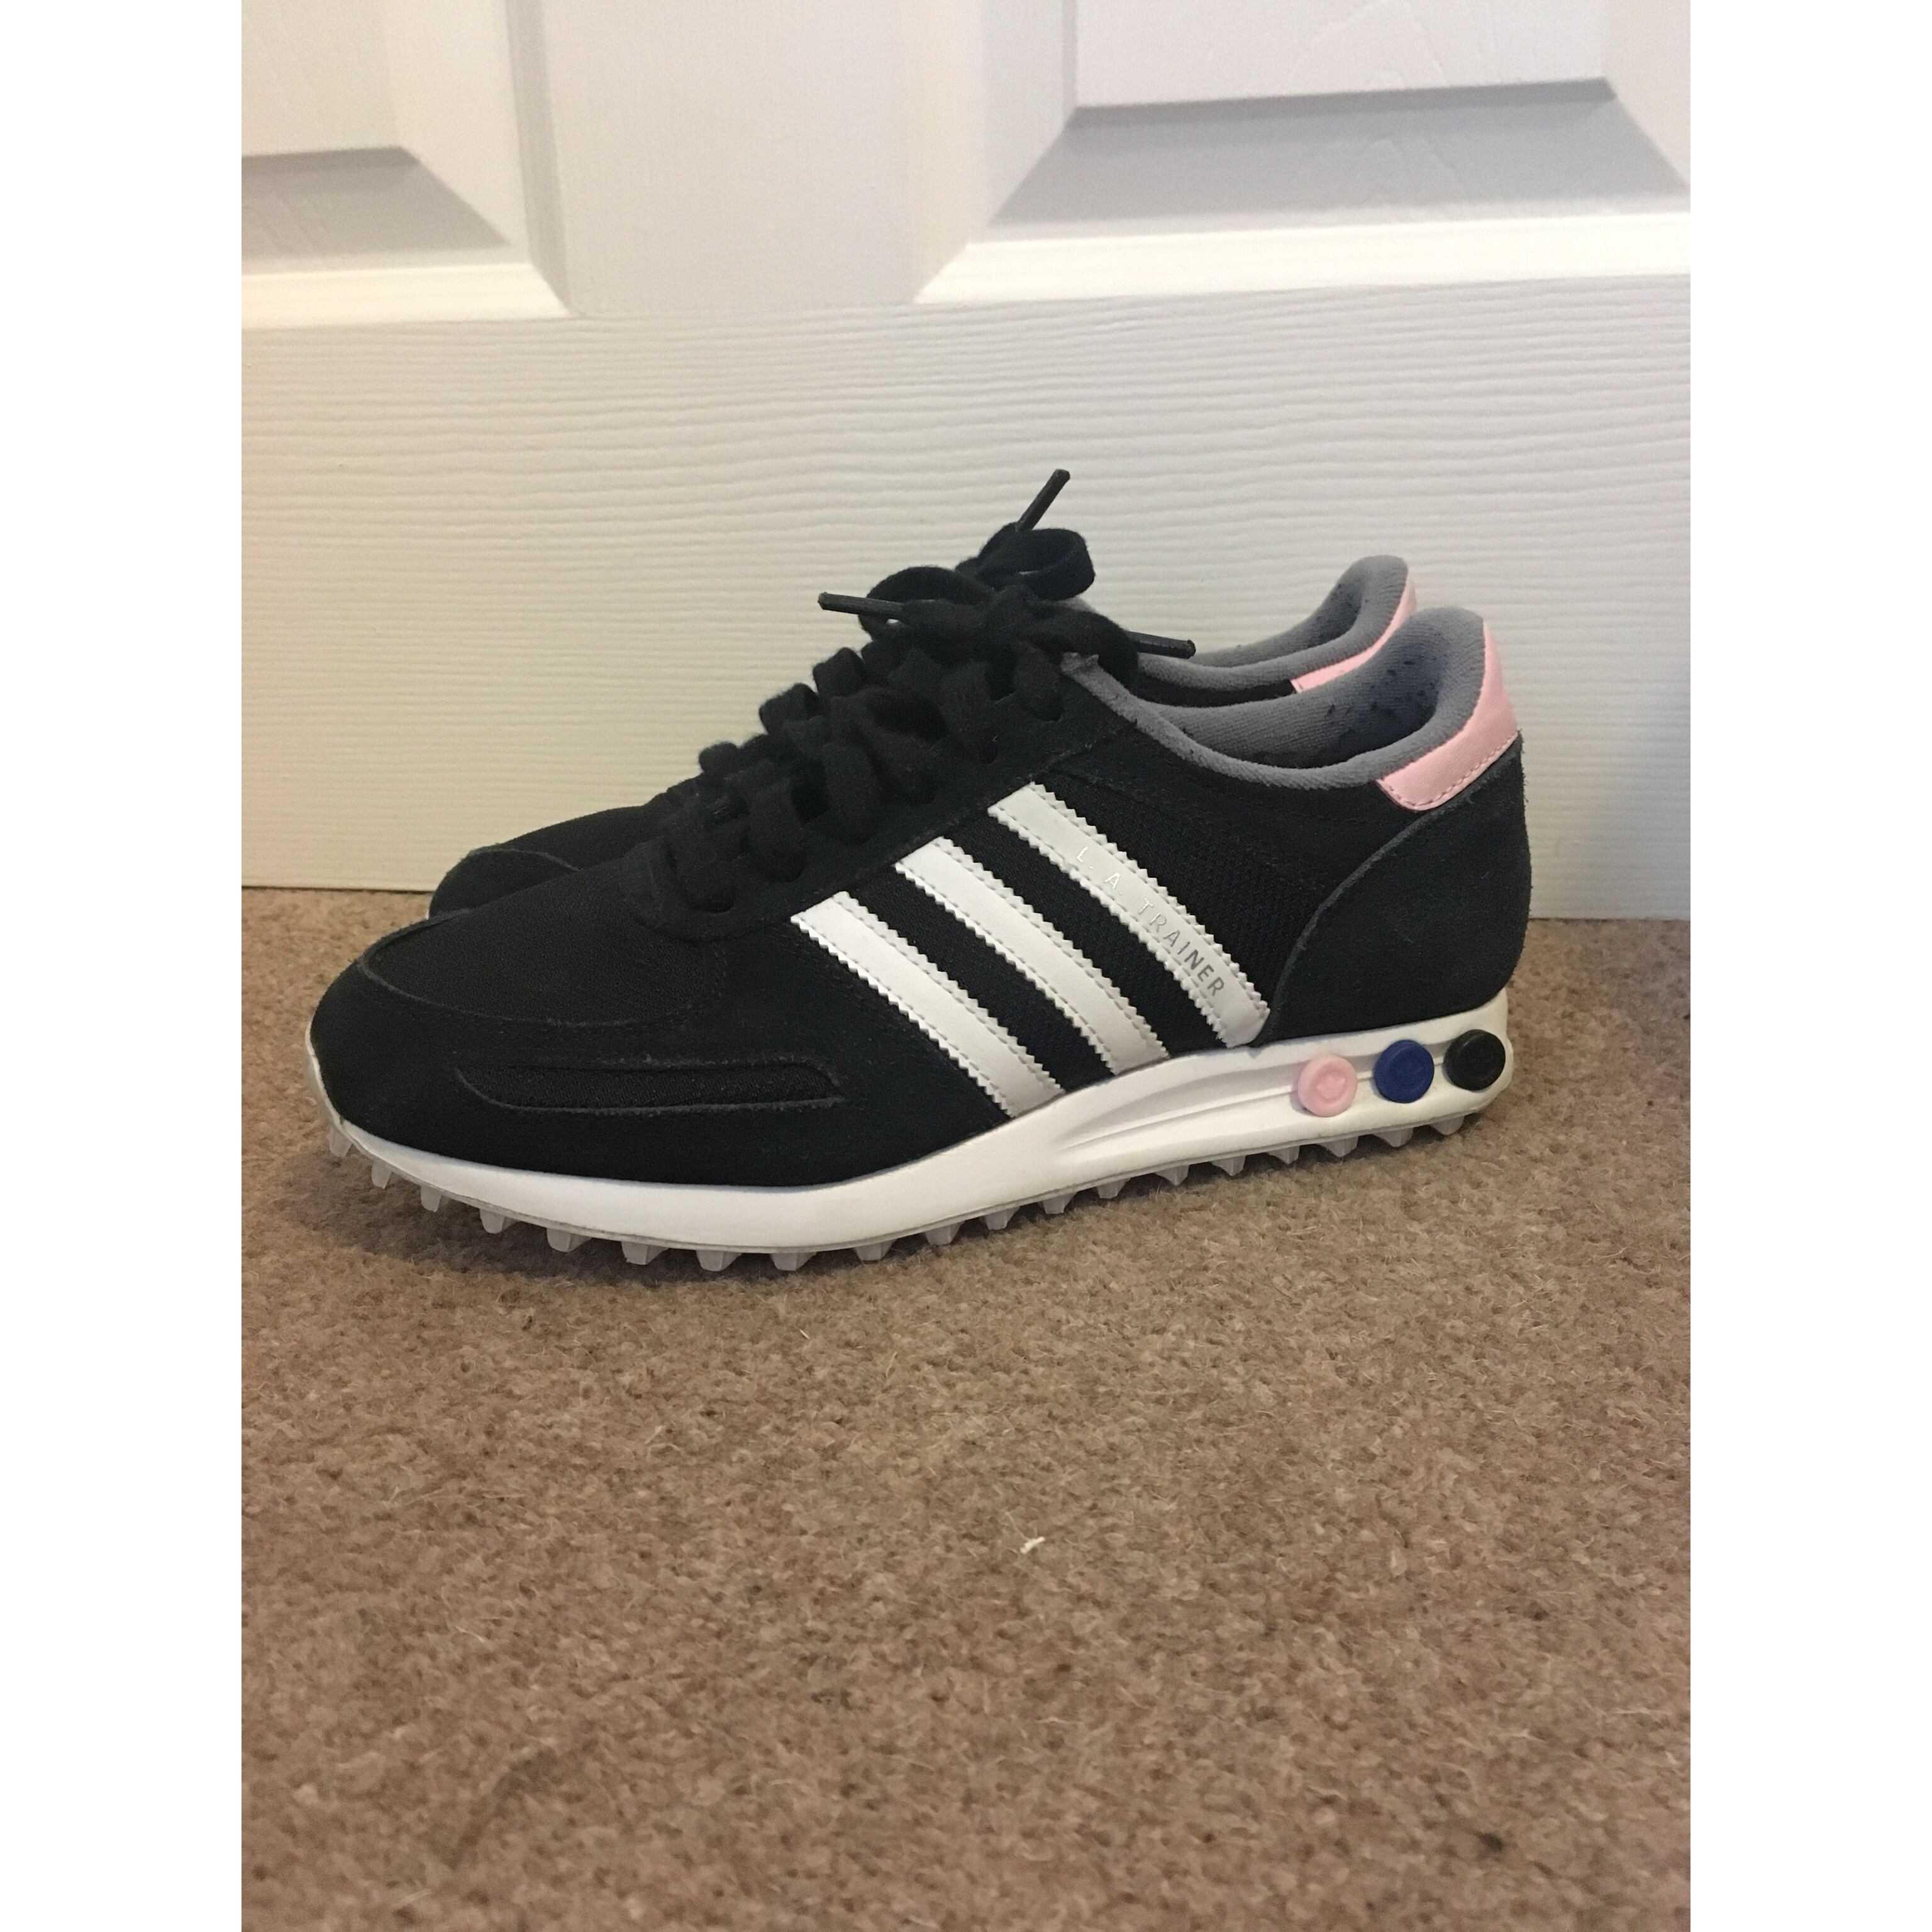 Adidas ladies LA trainers in Black with baby pink...